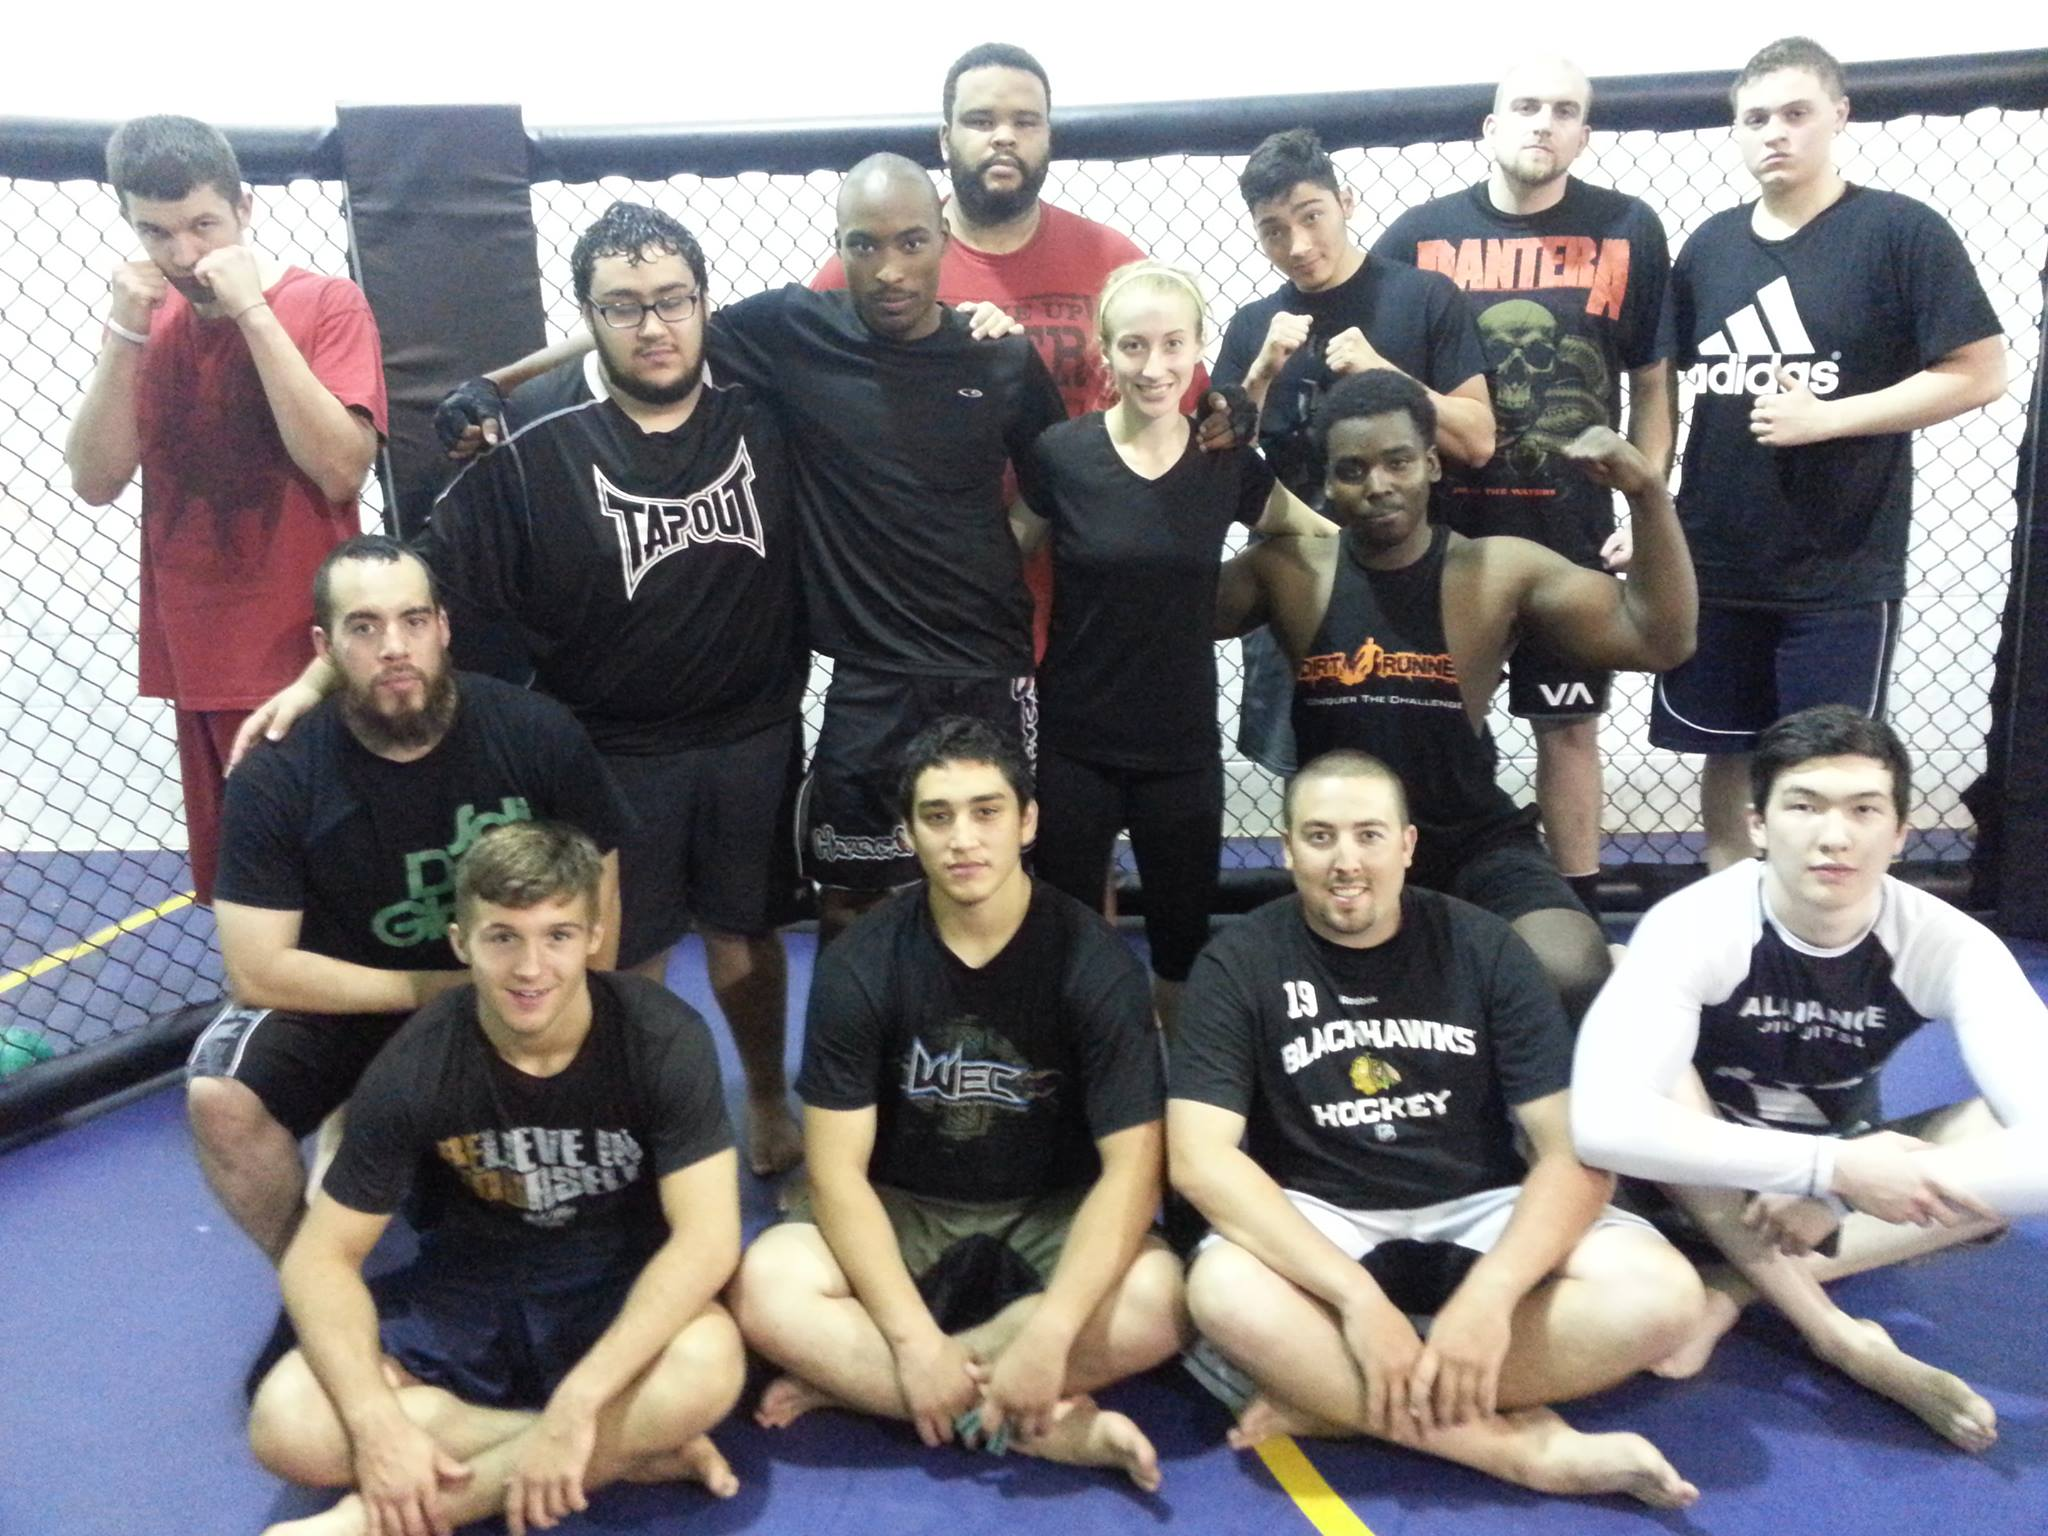 Chicago's Best MMA gyms-14 Days of Free Training Classes